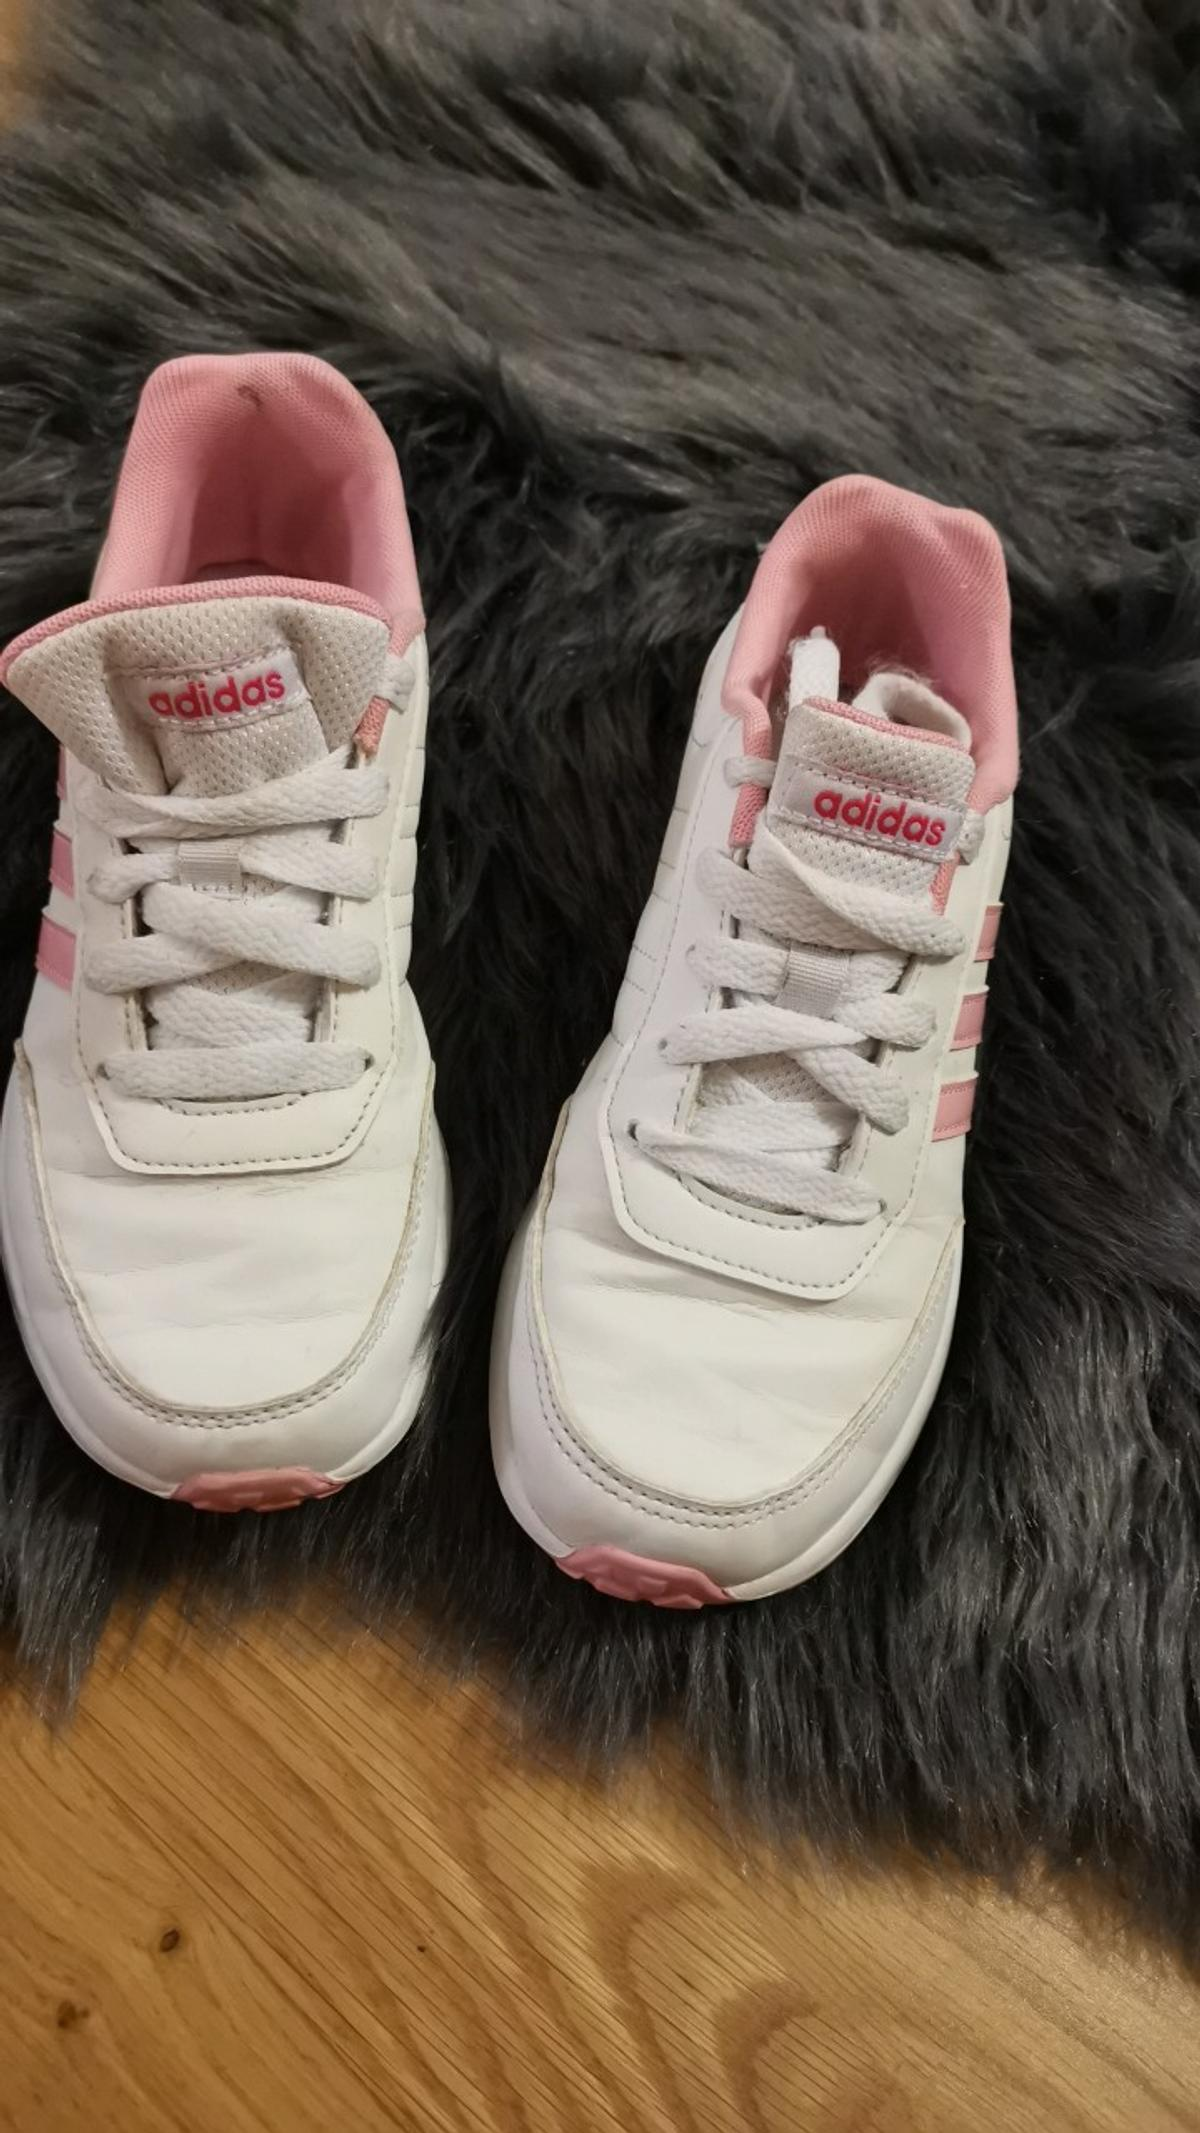 d26744579cec5 Adidas trainers girls size UK2 in RM1 London for £5.00 for sale - Shpock